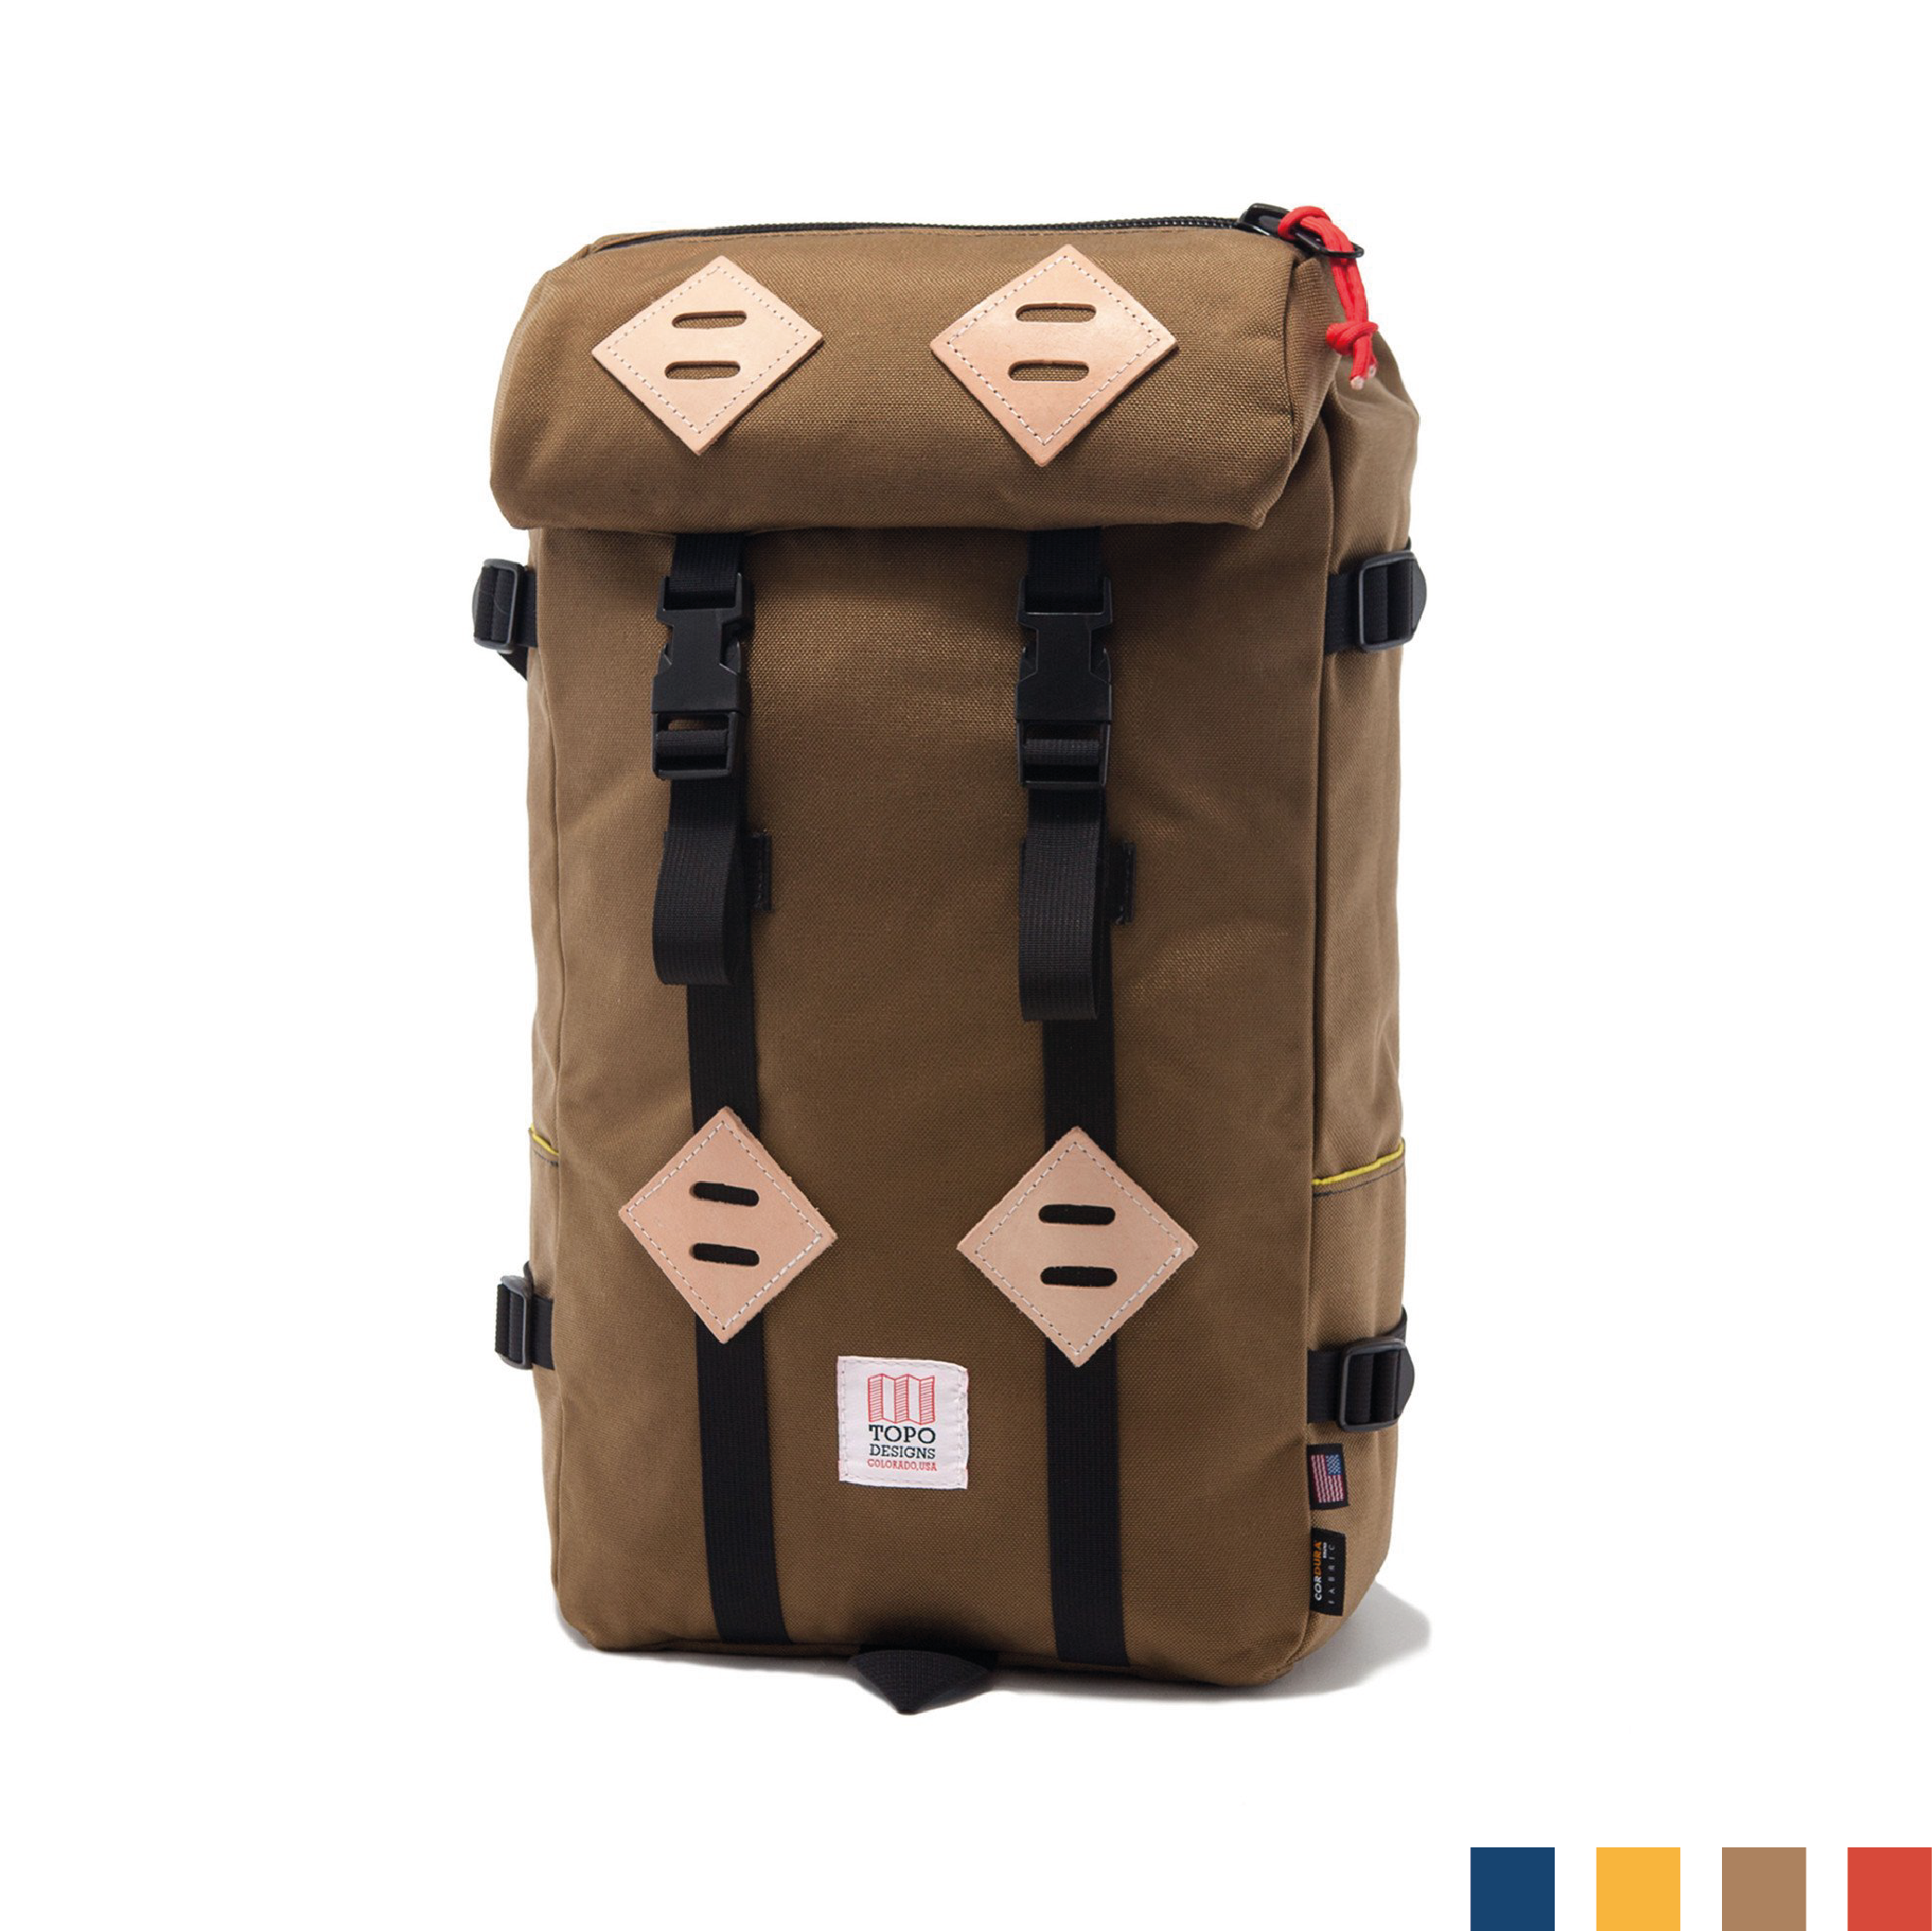 KLETTERSACK    By  Topo Designs     The classic and rugged 22L backpack to join you on all adventures big or small.    SHOP NOW          £160